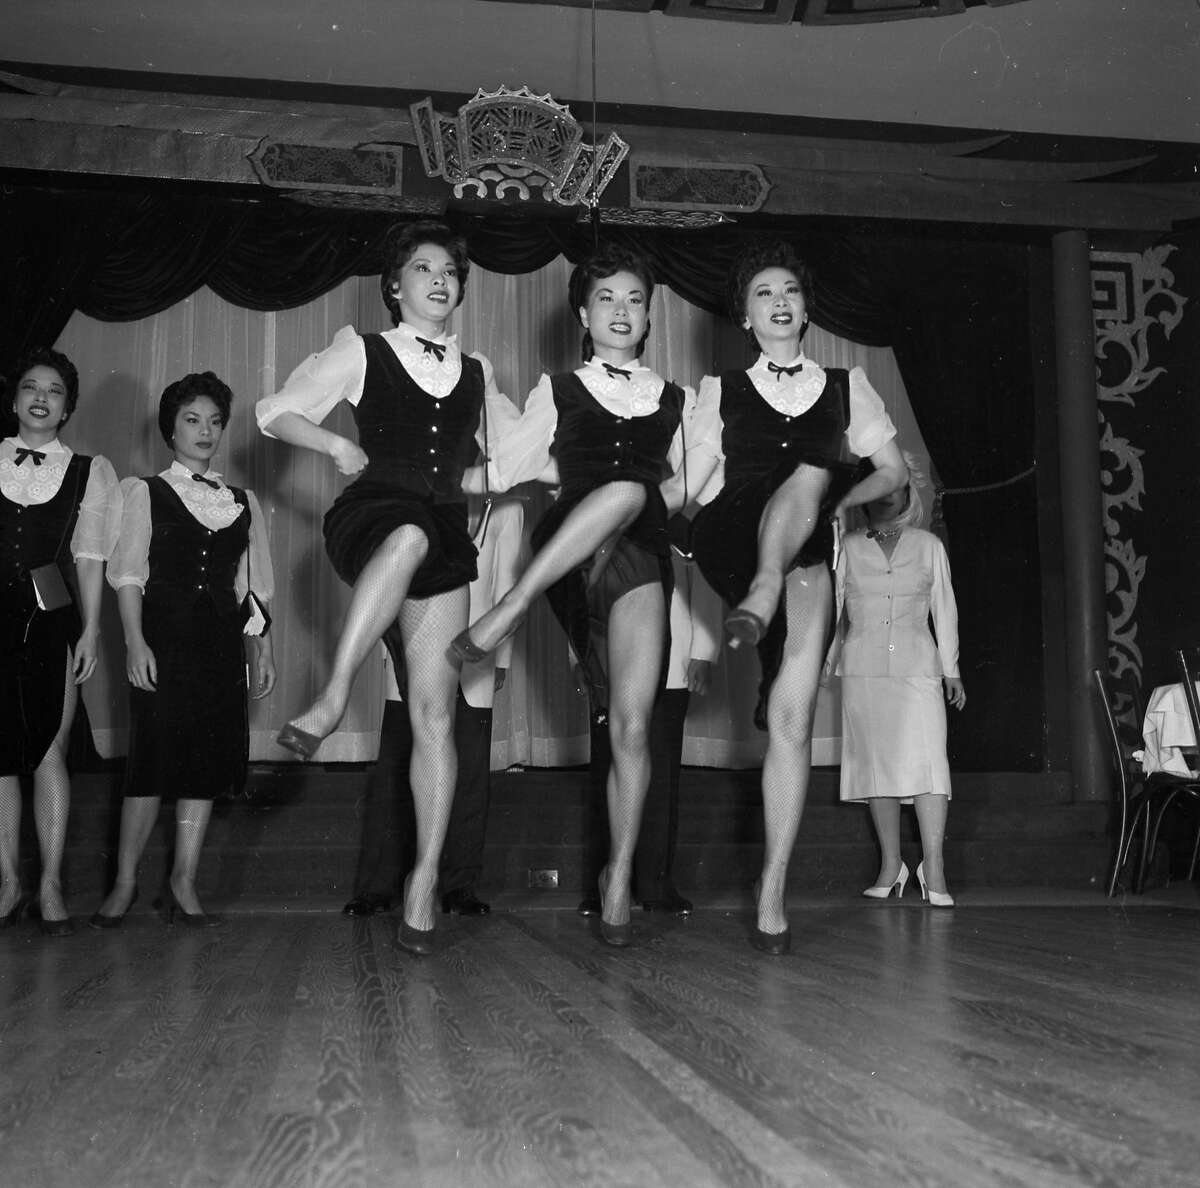 Circa 1955: A line of chorus girls entertains visitors to the Forbidden City nightclub in Chinatown, San Francisco. (Photo by Orlando /Three Lions/Getty Images)